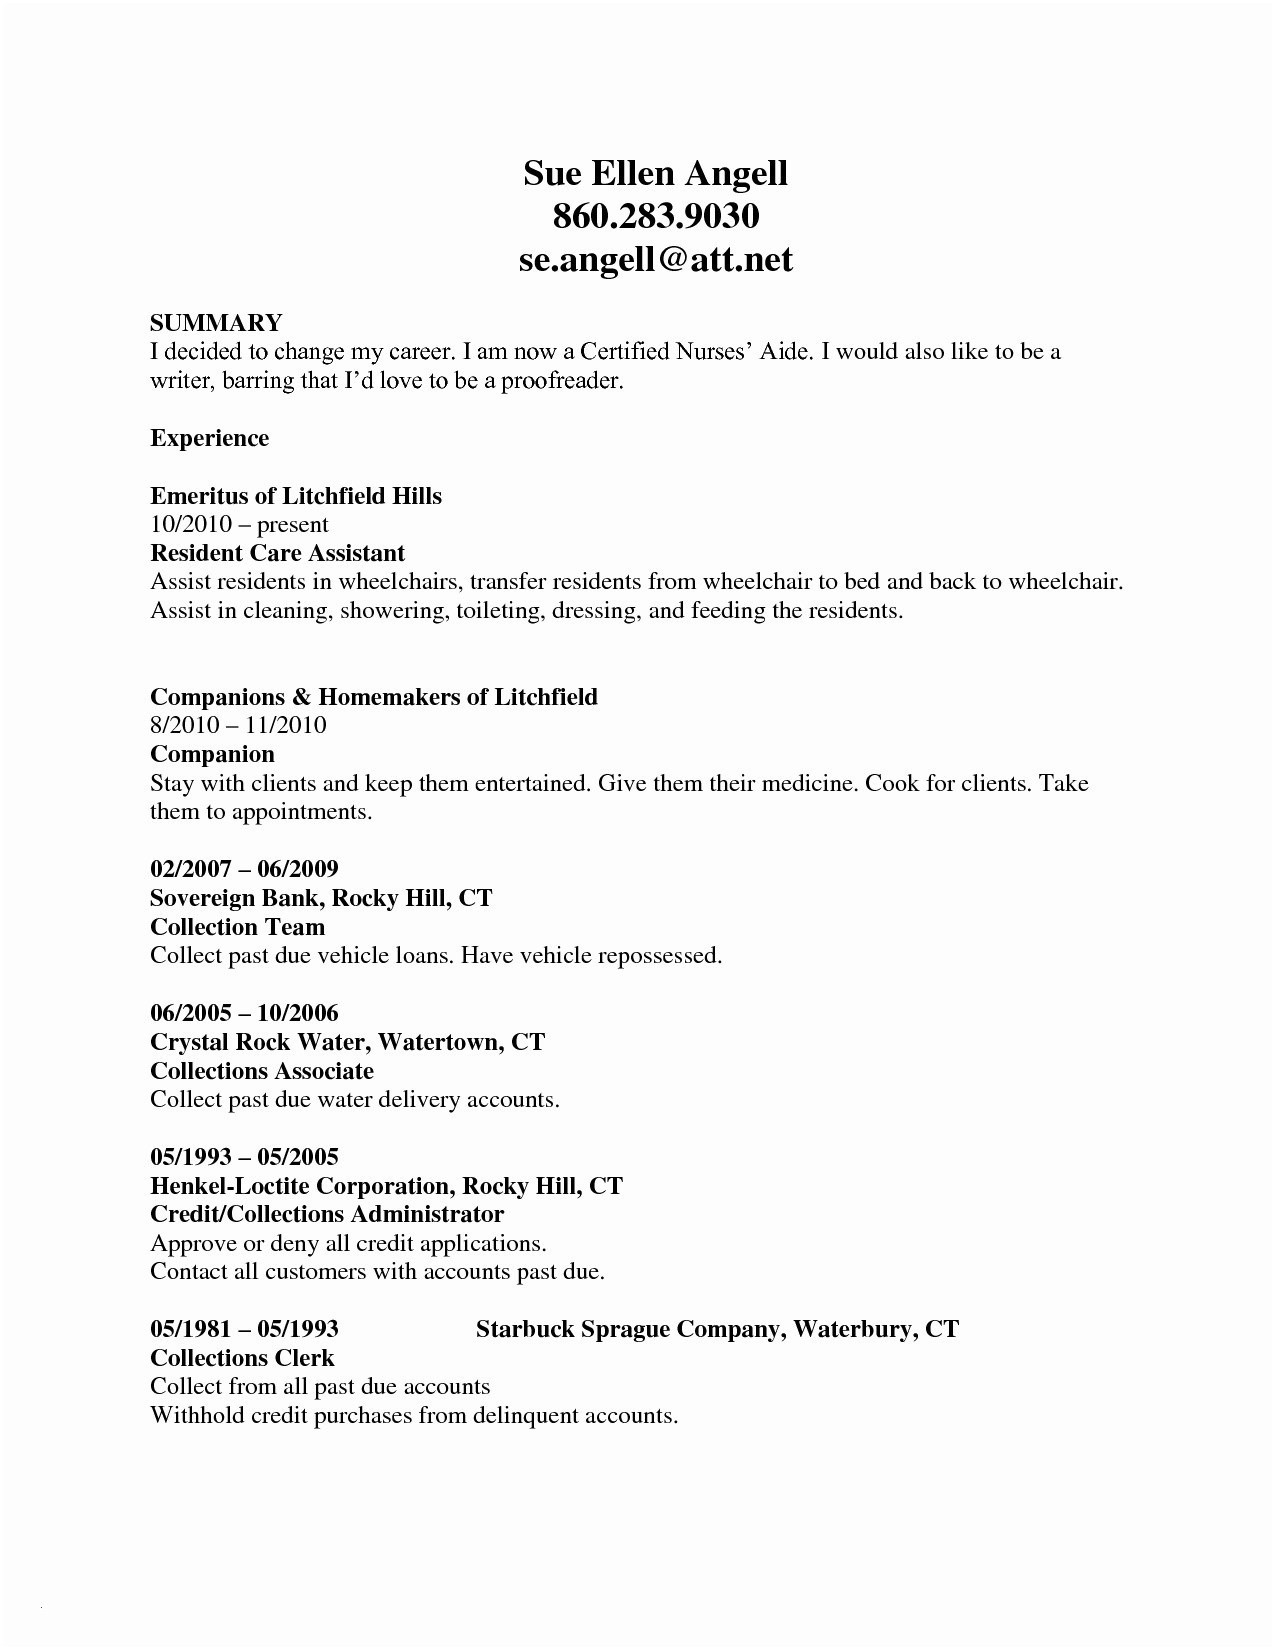 Nurse Resume Template Microsoft Word - Nursing Resume Template Word Best Nursing Resume Templates Word